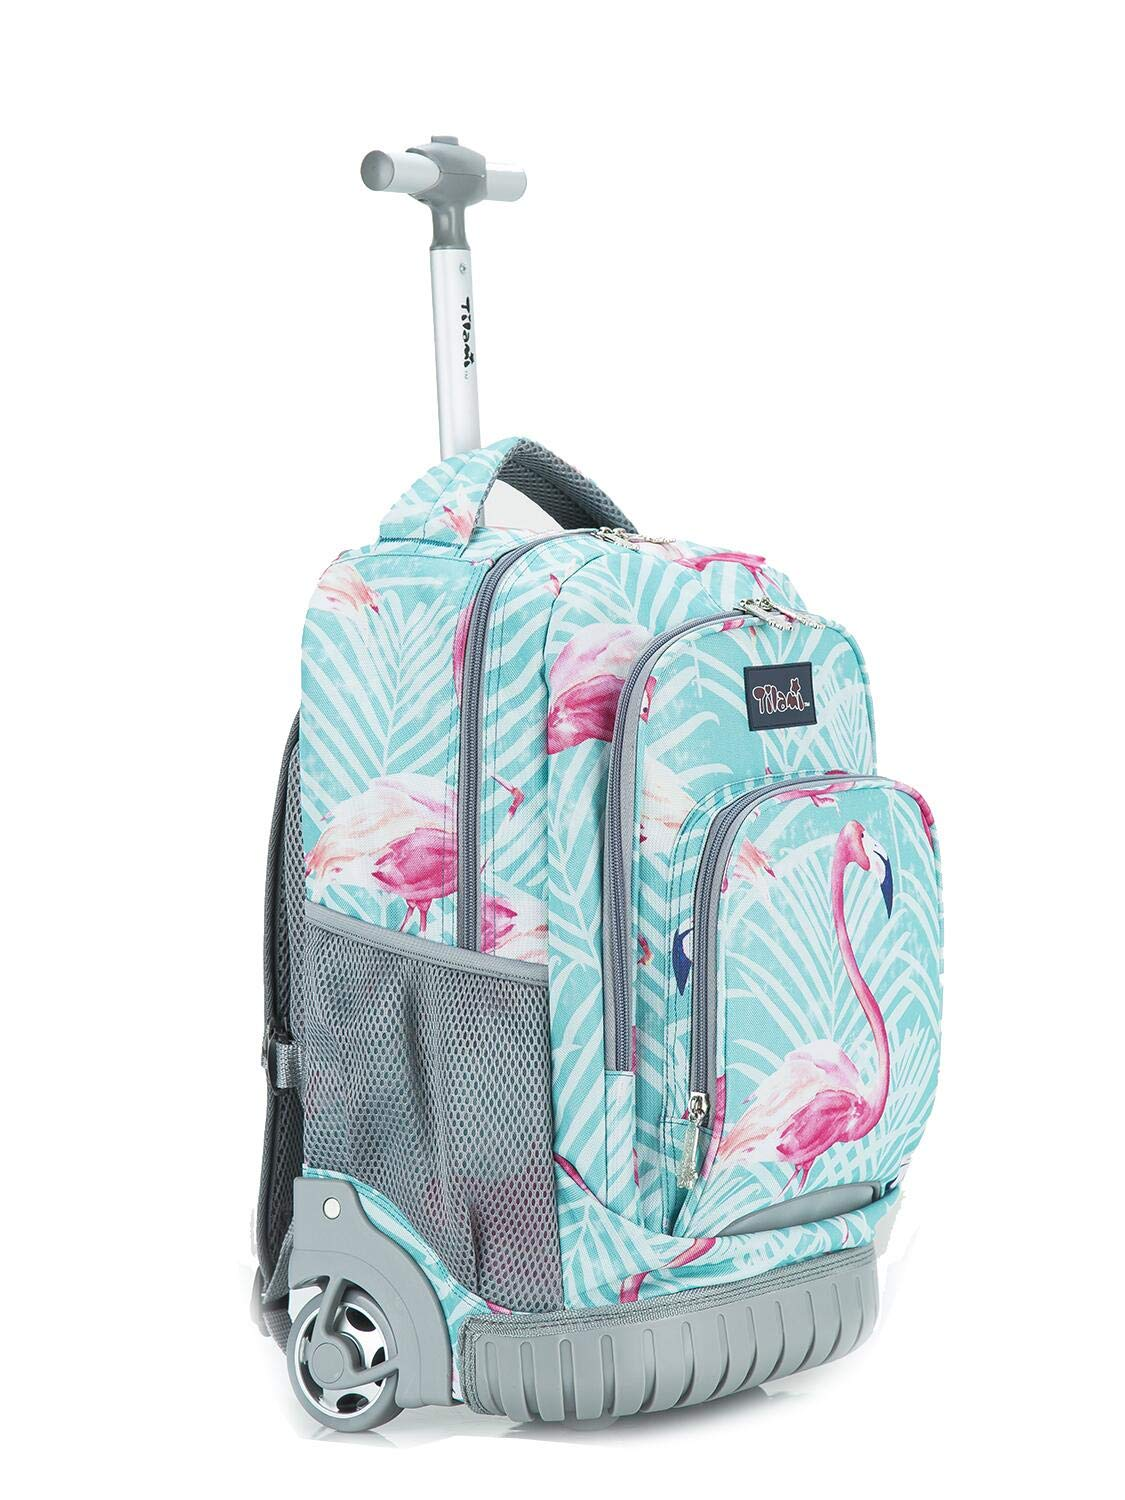 Tilami New Antifouling Design 18 Inch Oversized load multi-compartment Wheeled Rolling Backpack Luggage Kids (Flamingo) by Tilami